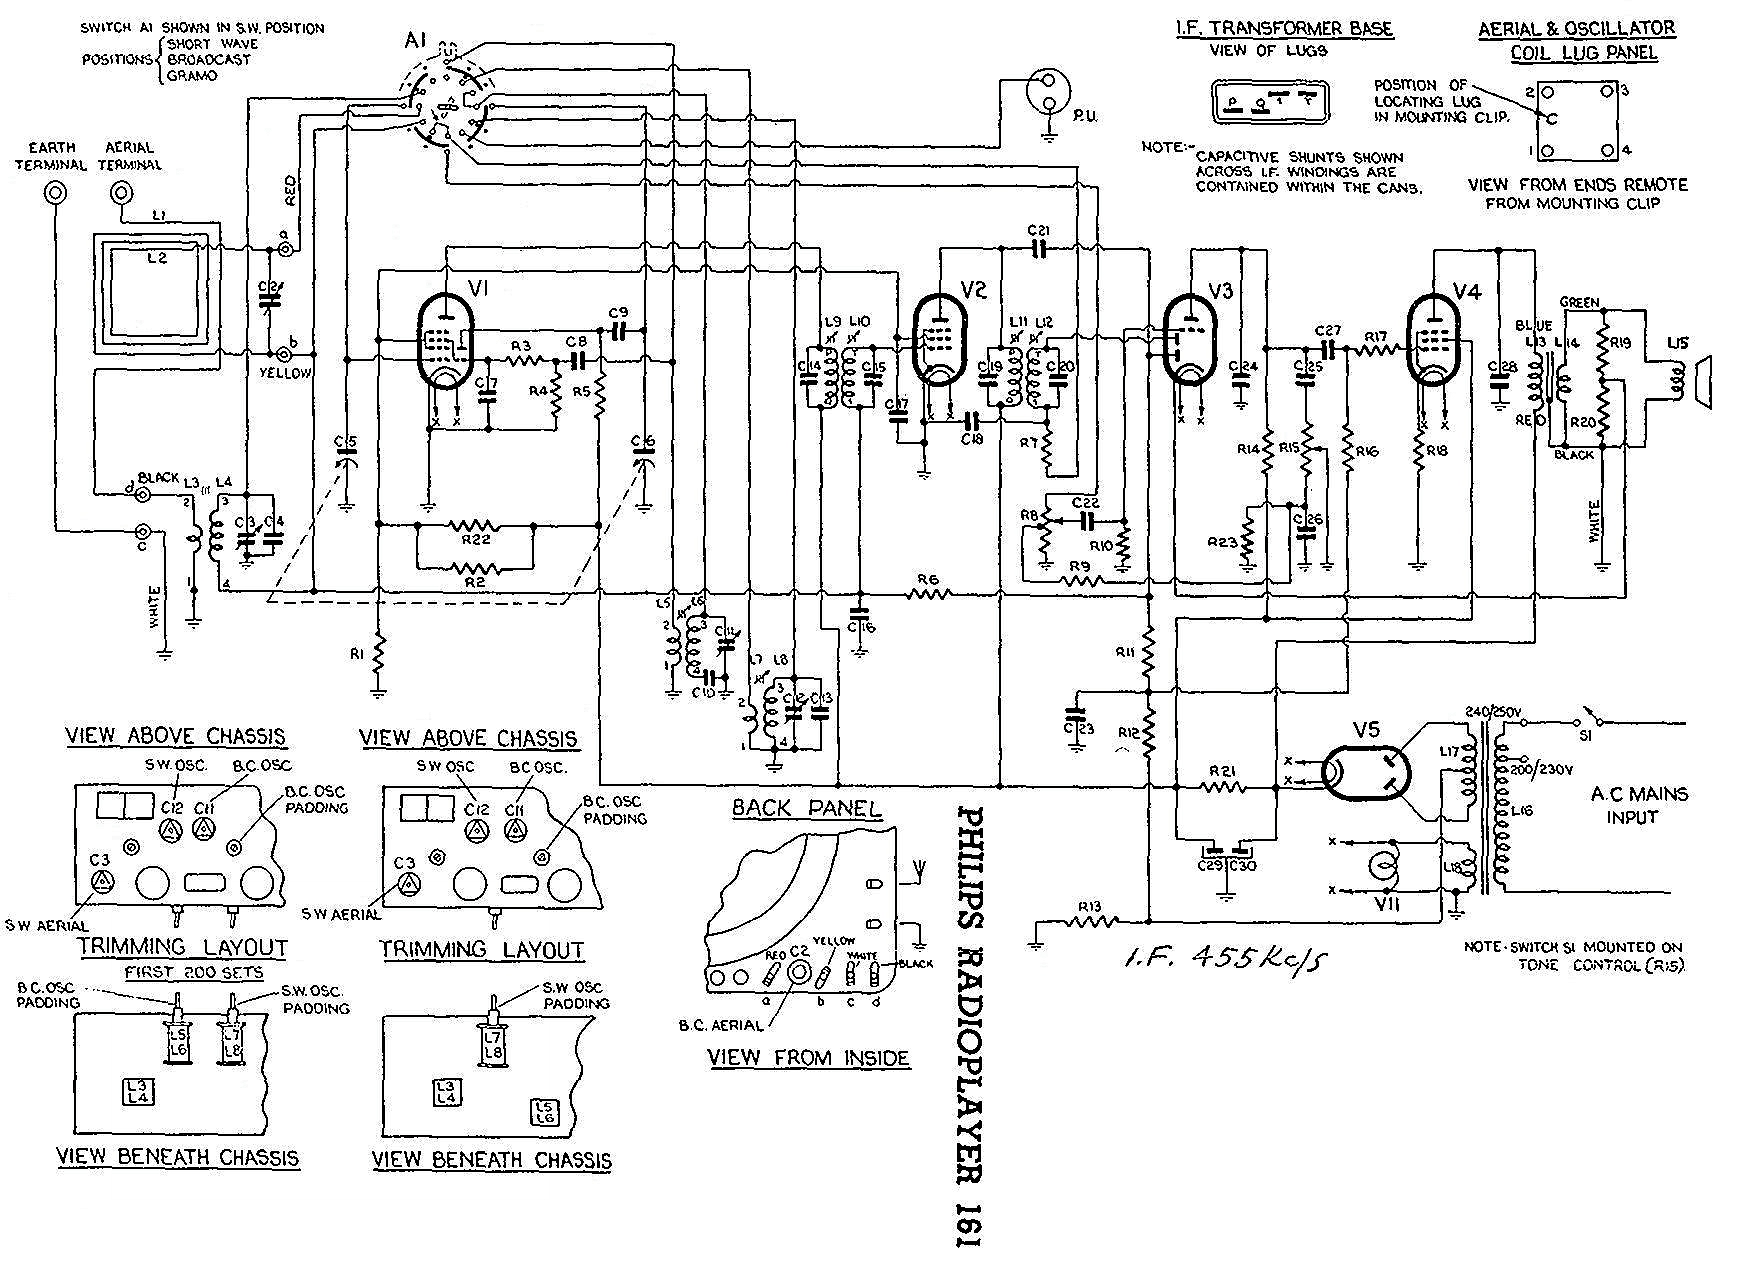 ford engine history ford circuit diagrams amazing top ford 302 engine history ford circuit diagrams tube phono pre schematic further geiger counter circuit schematic